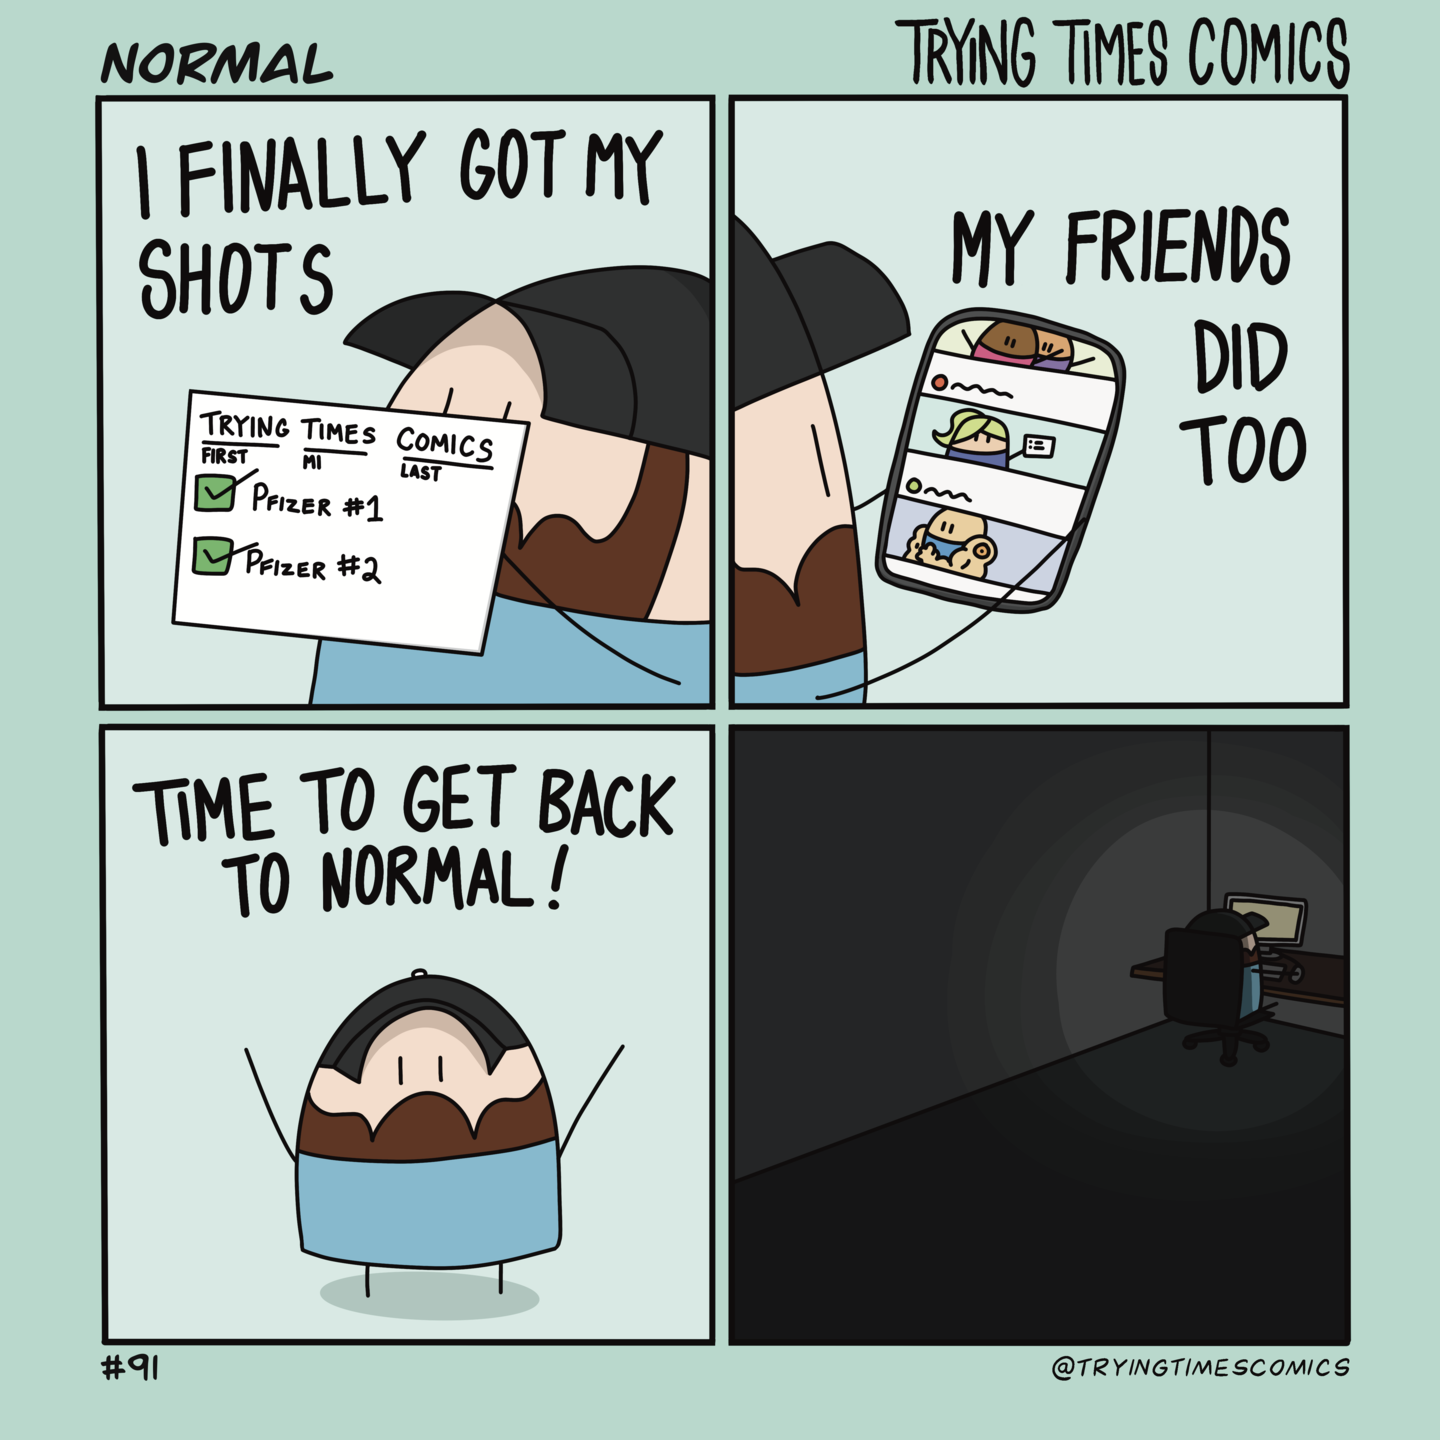 A Trying Times Comic